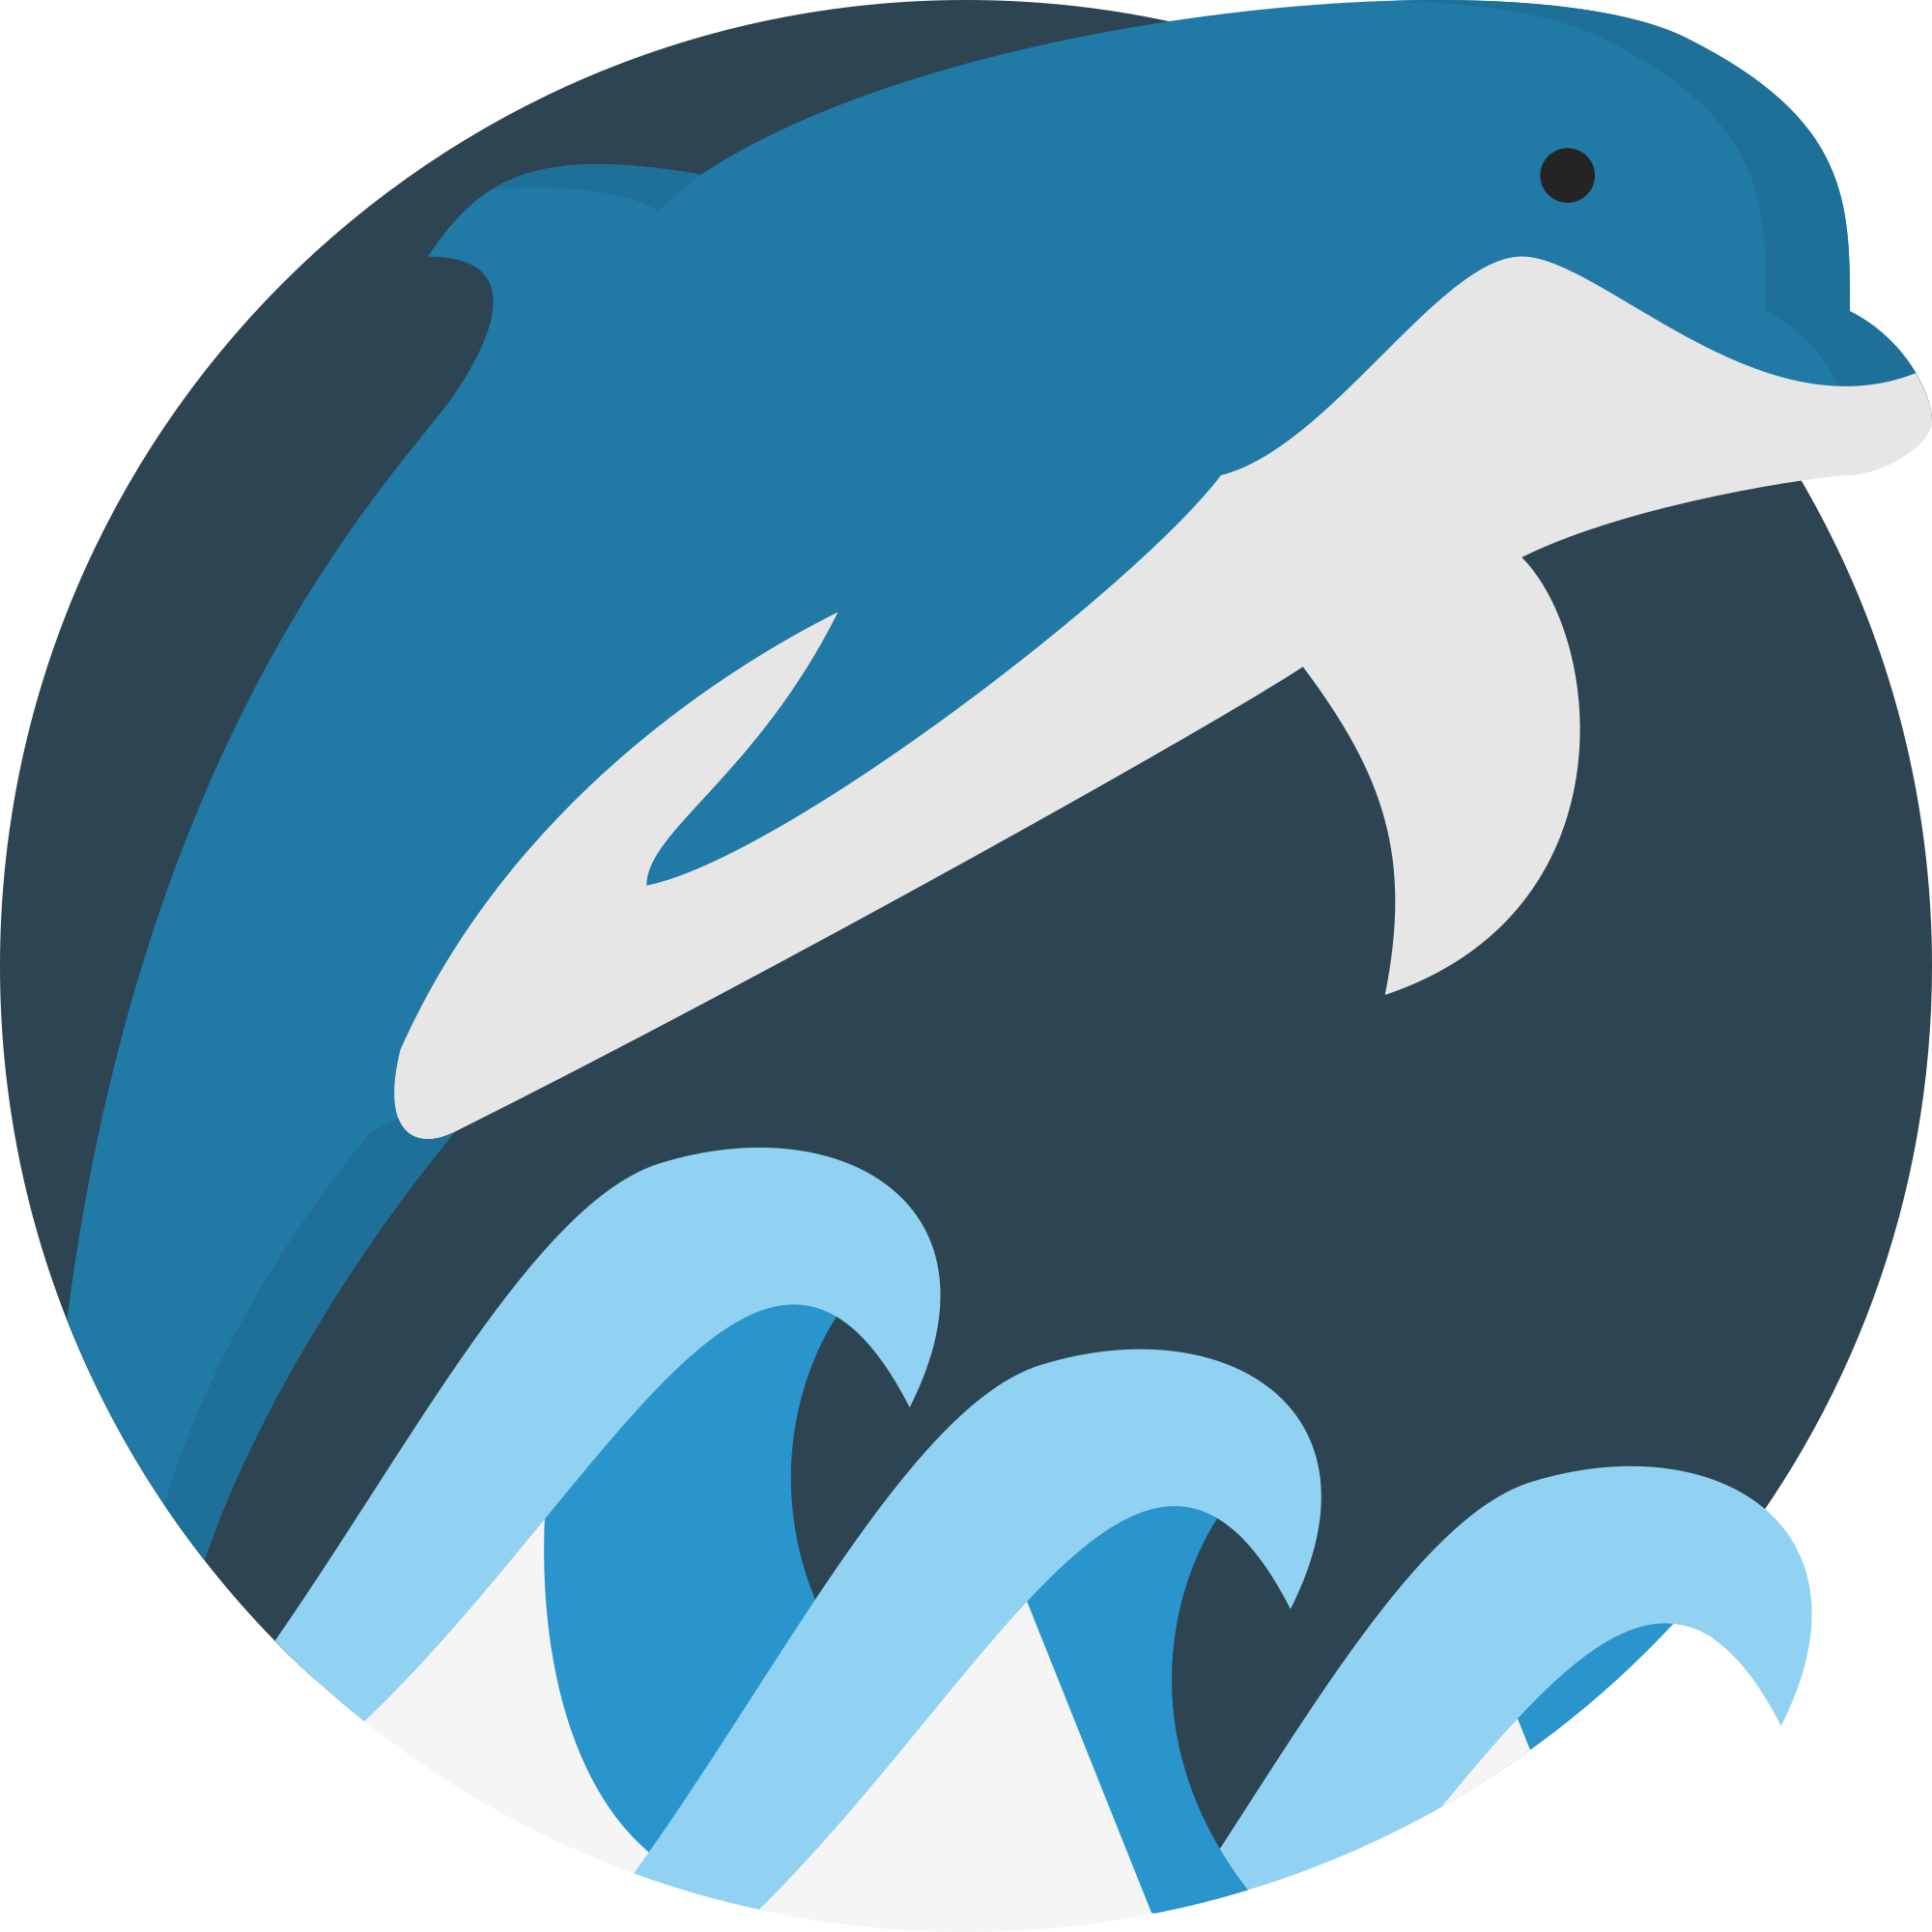 Dolphin clipart dolphin tail. File creative animal svg